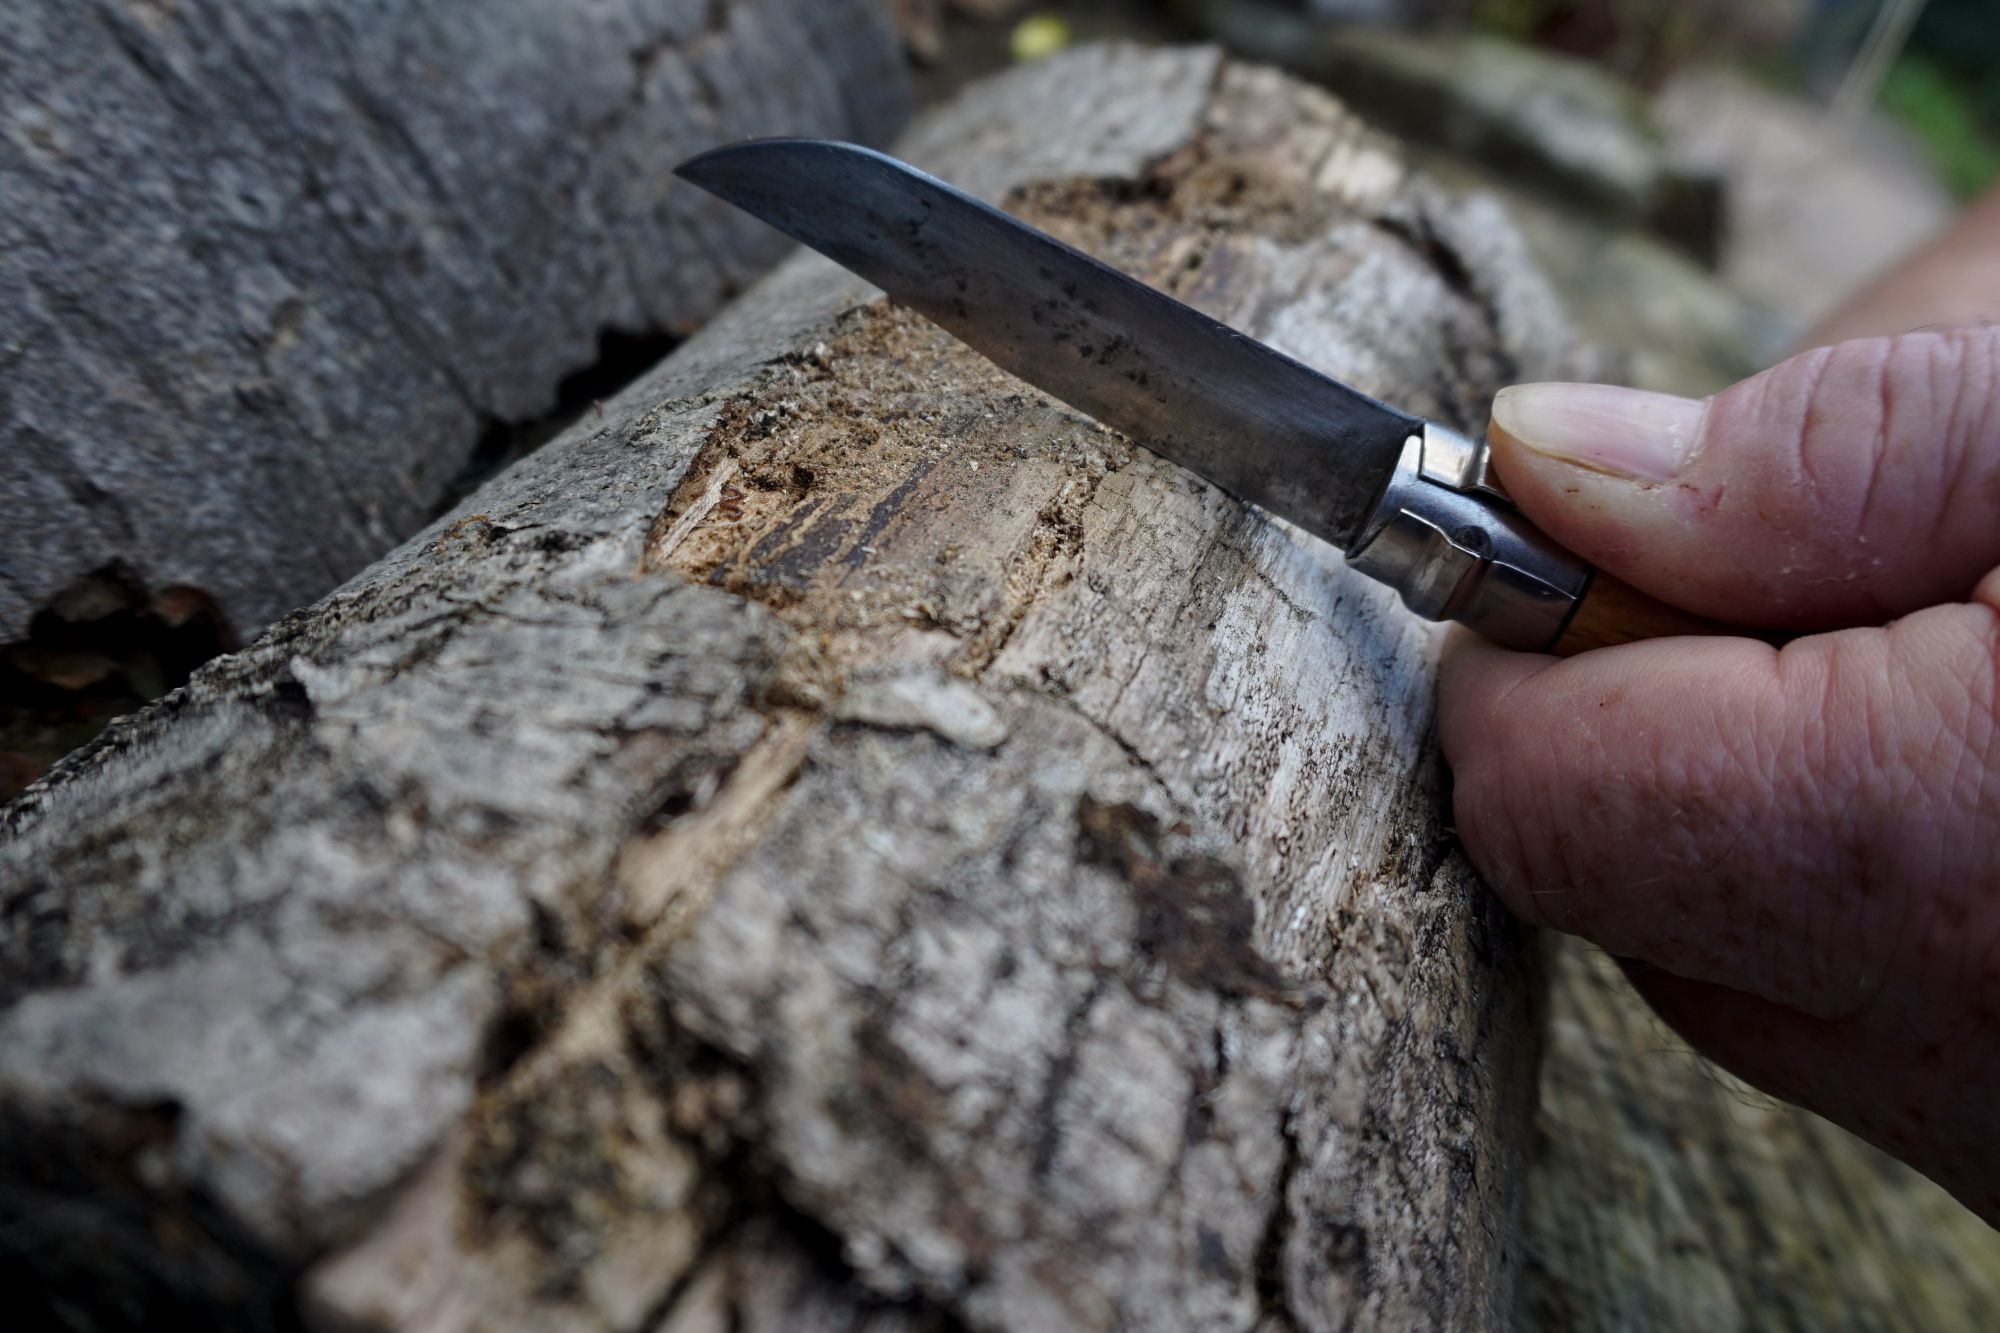 Stabilizing the Blade